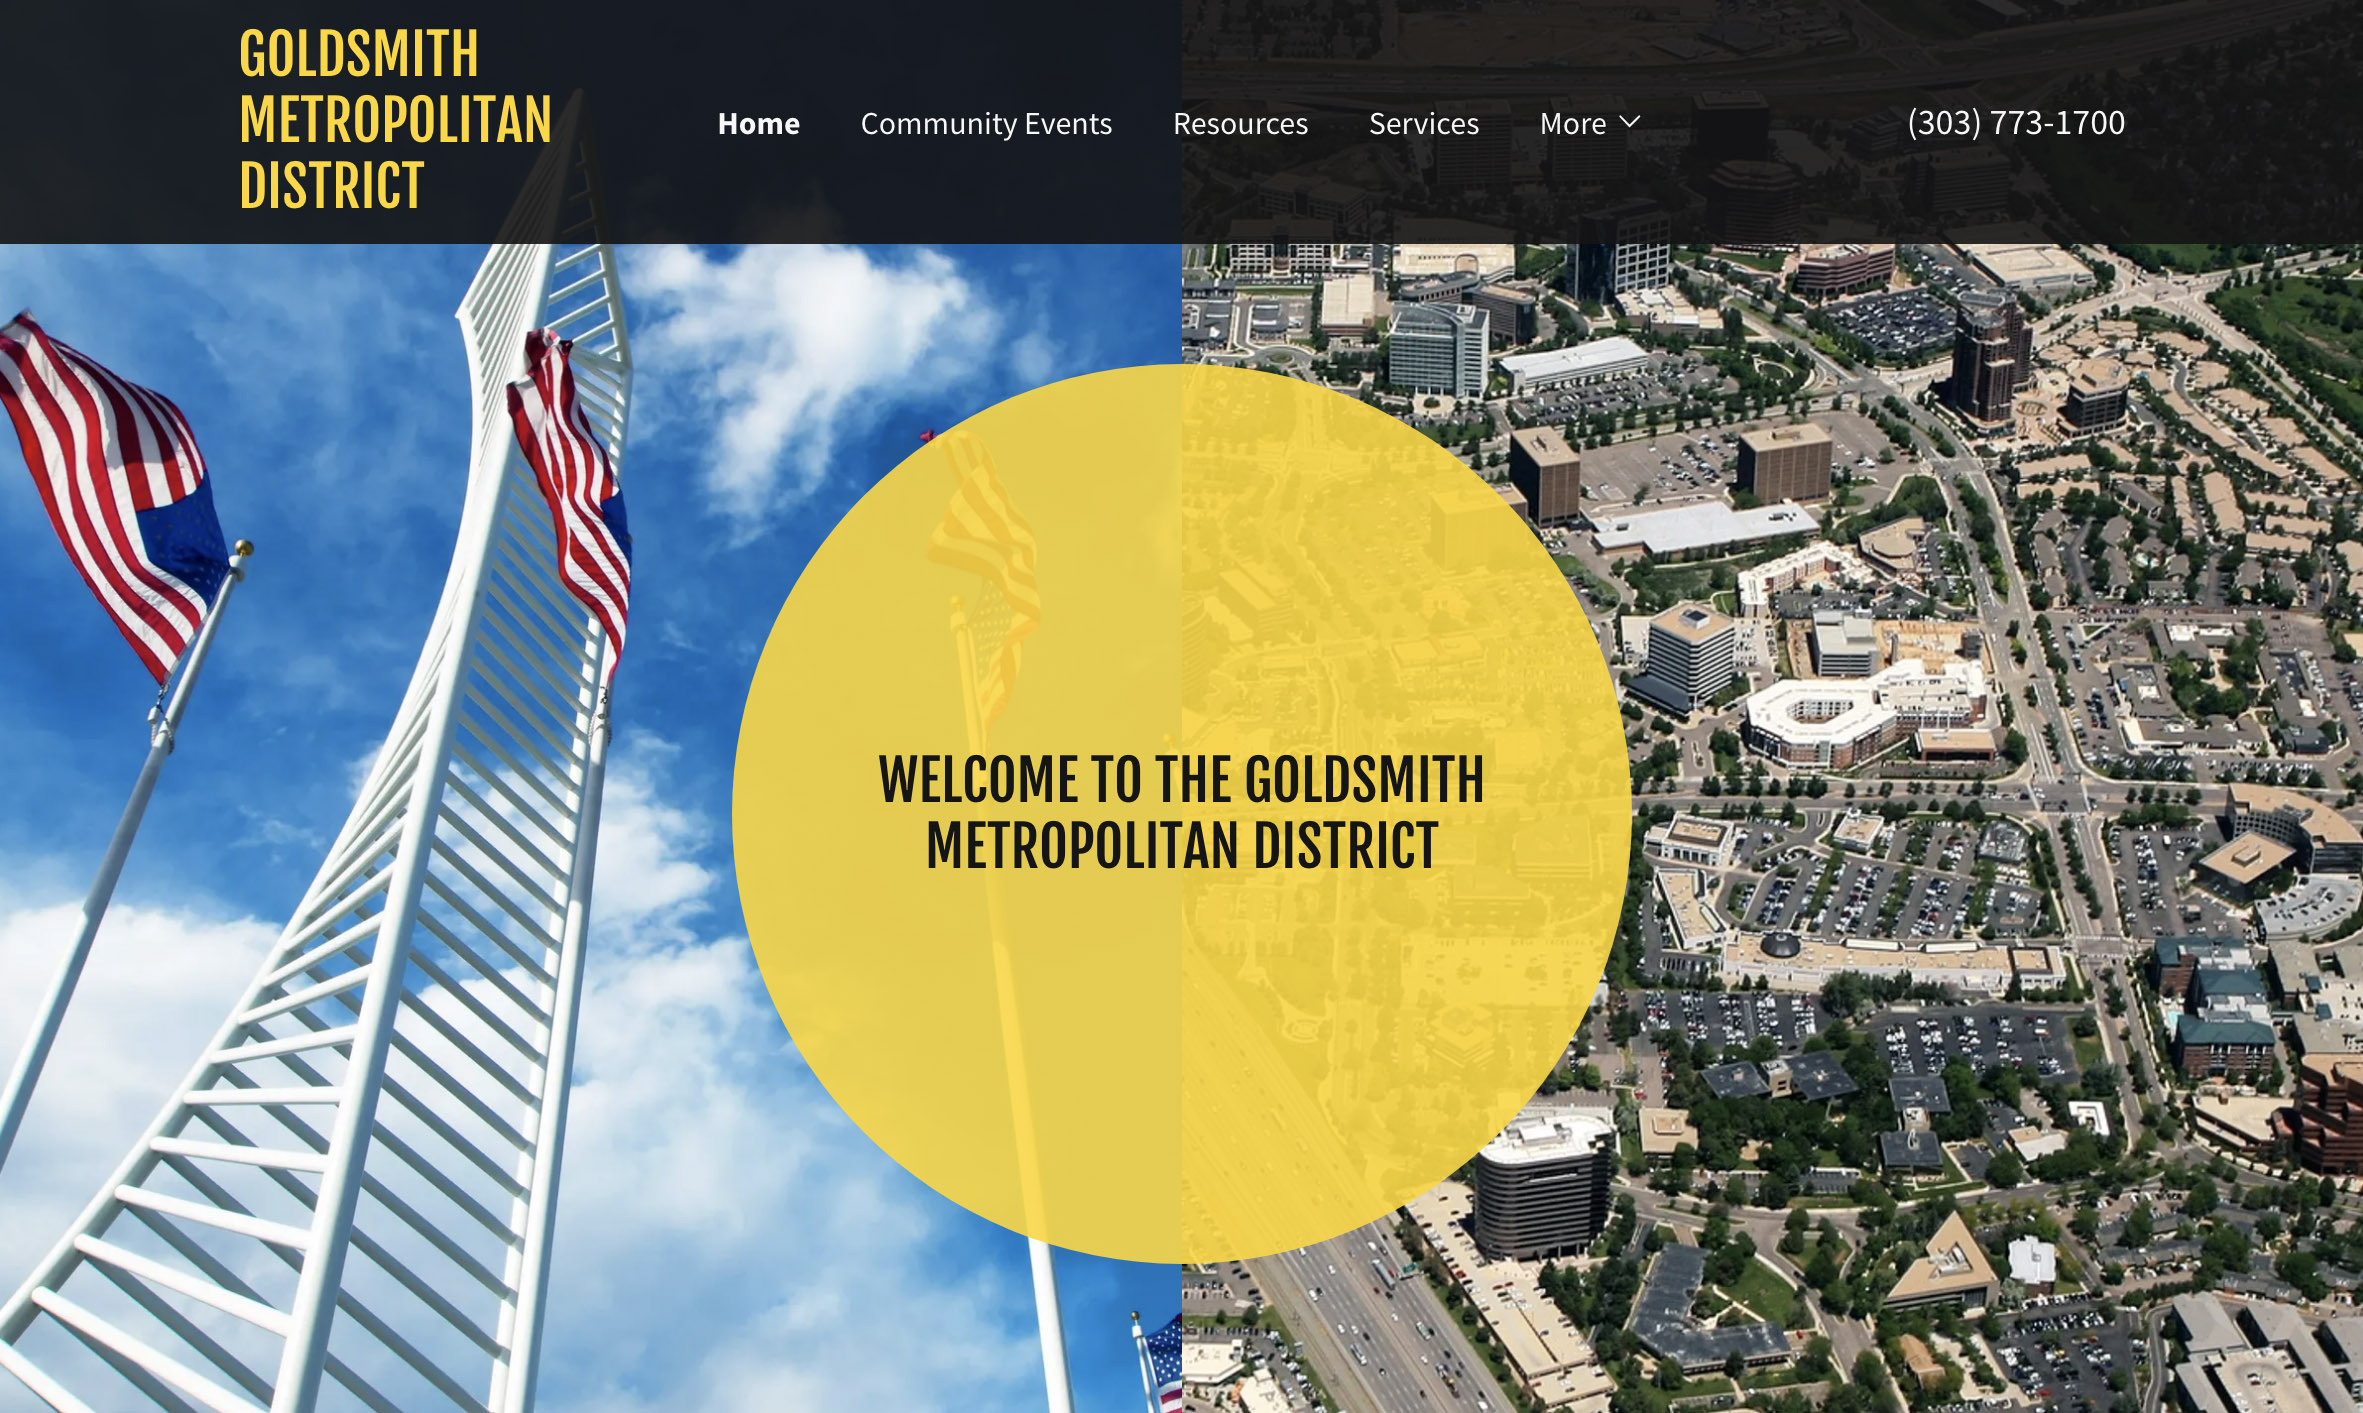 Goldsmith Metro District